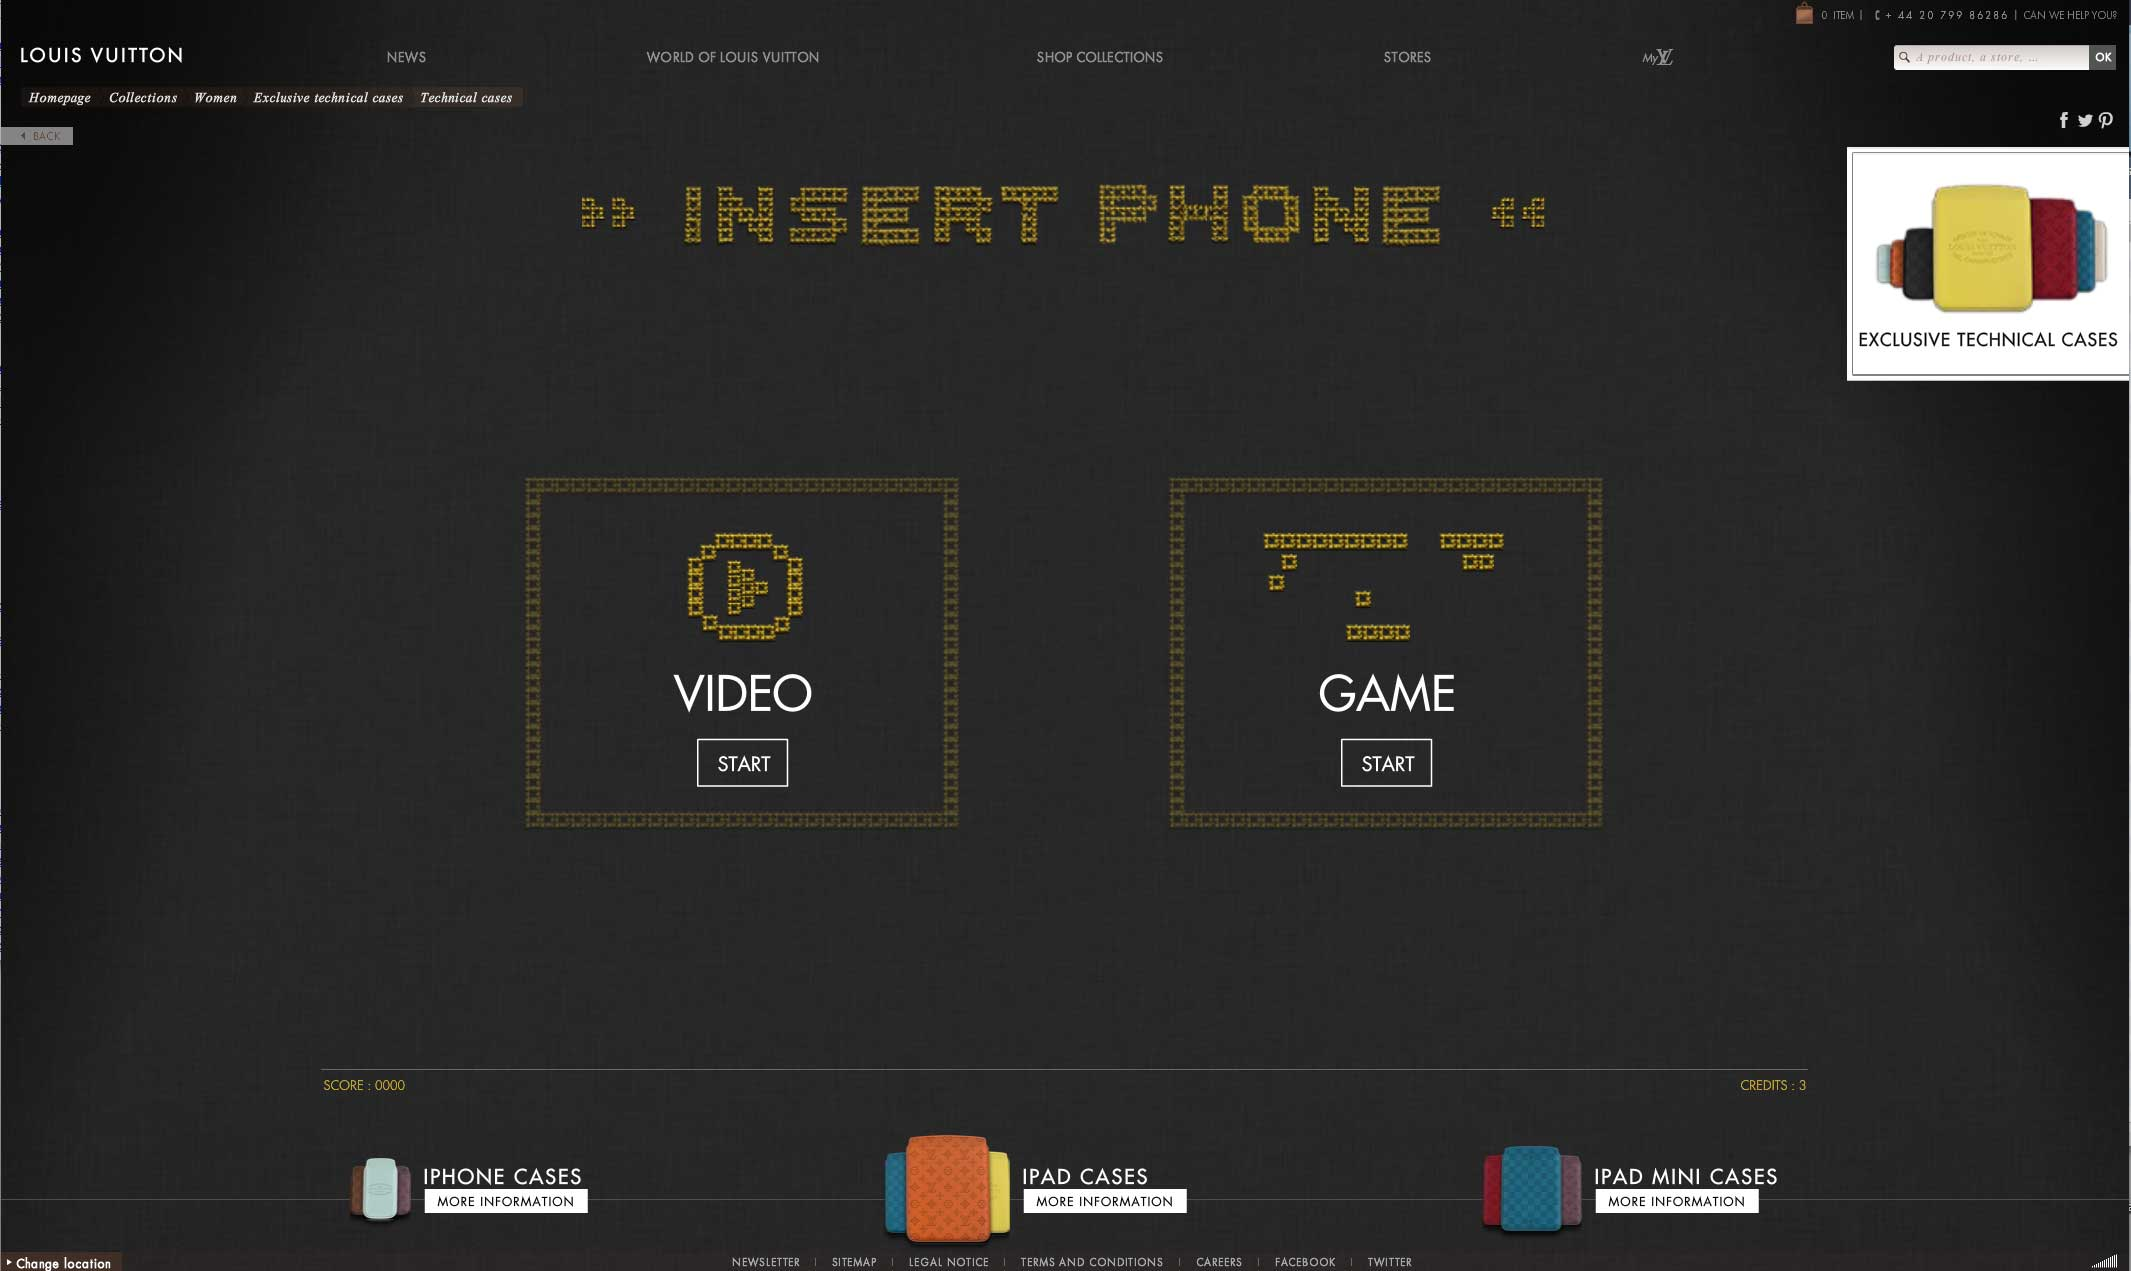 Luxury_Louis-Vuitton-interface-game